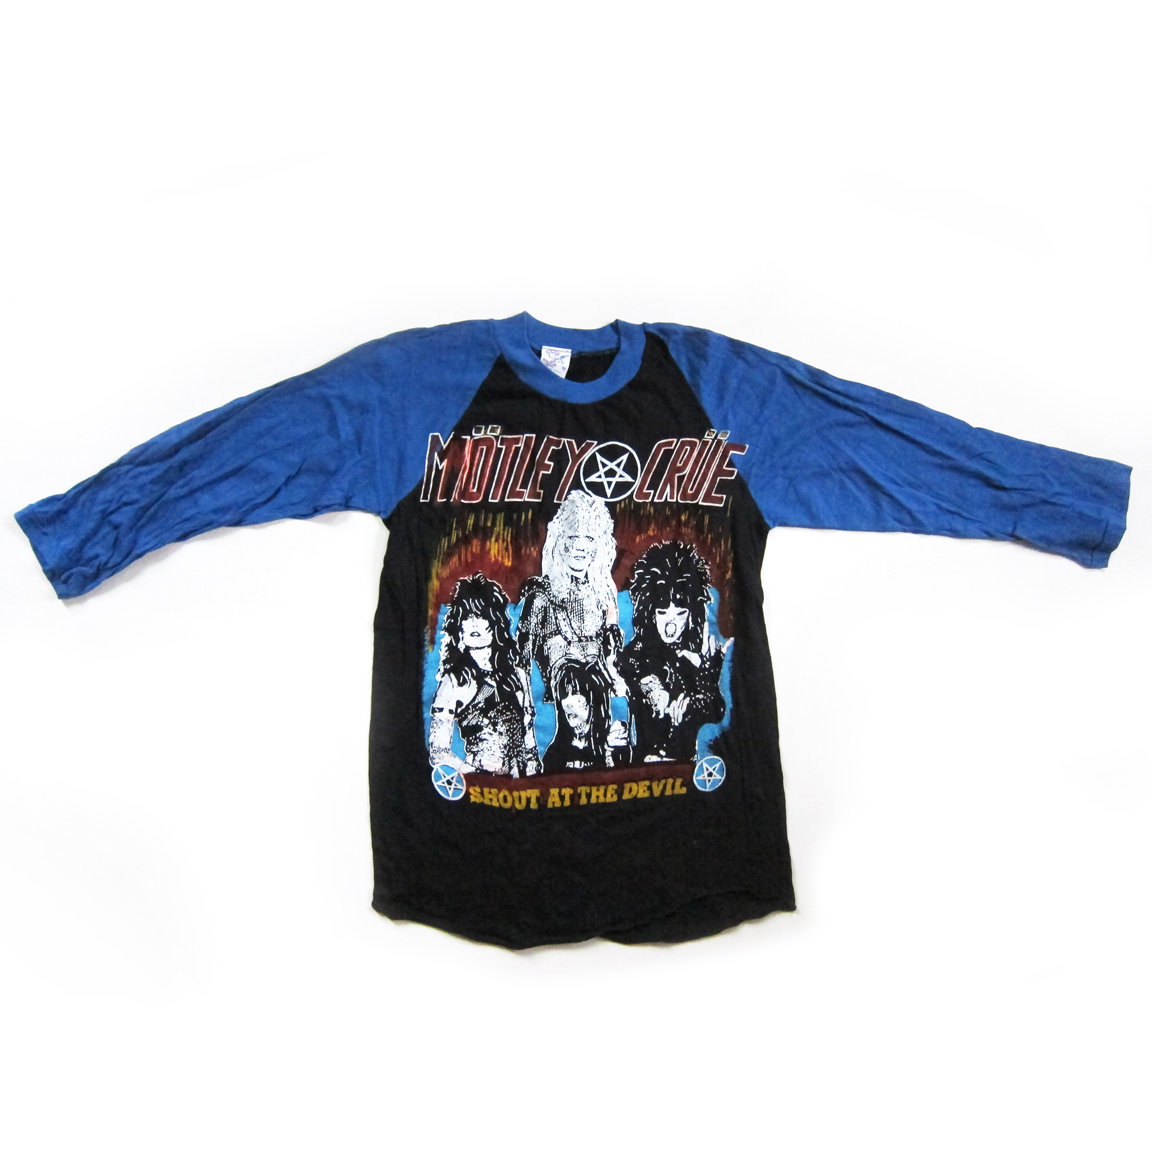 a59e719d Mötley Crüe Premium Vintage Concert Tee (from the 80s, never worn) main  photo